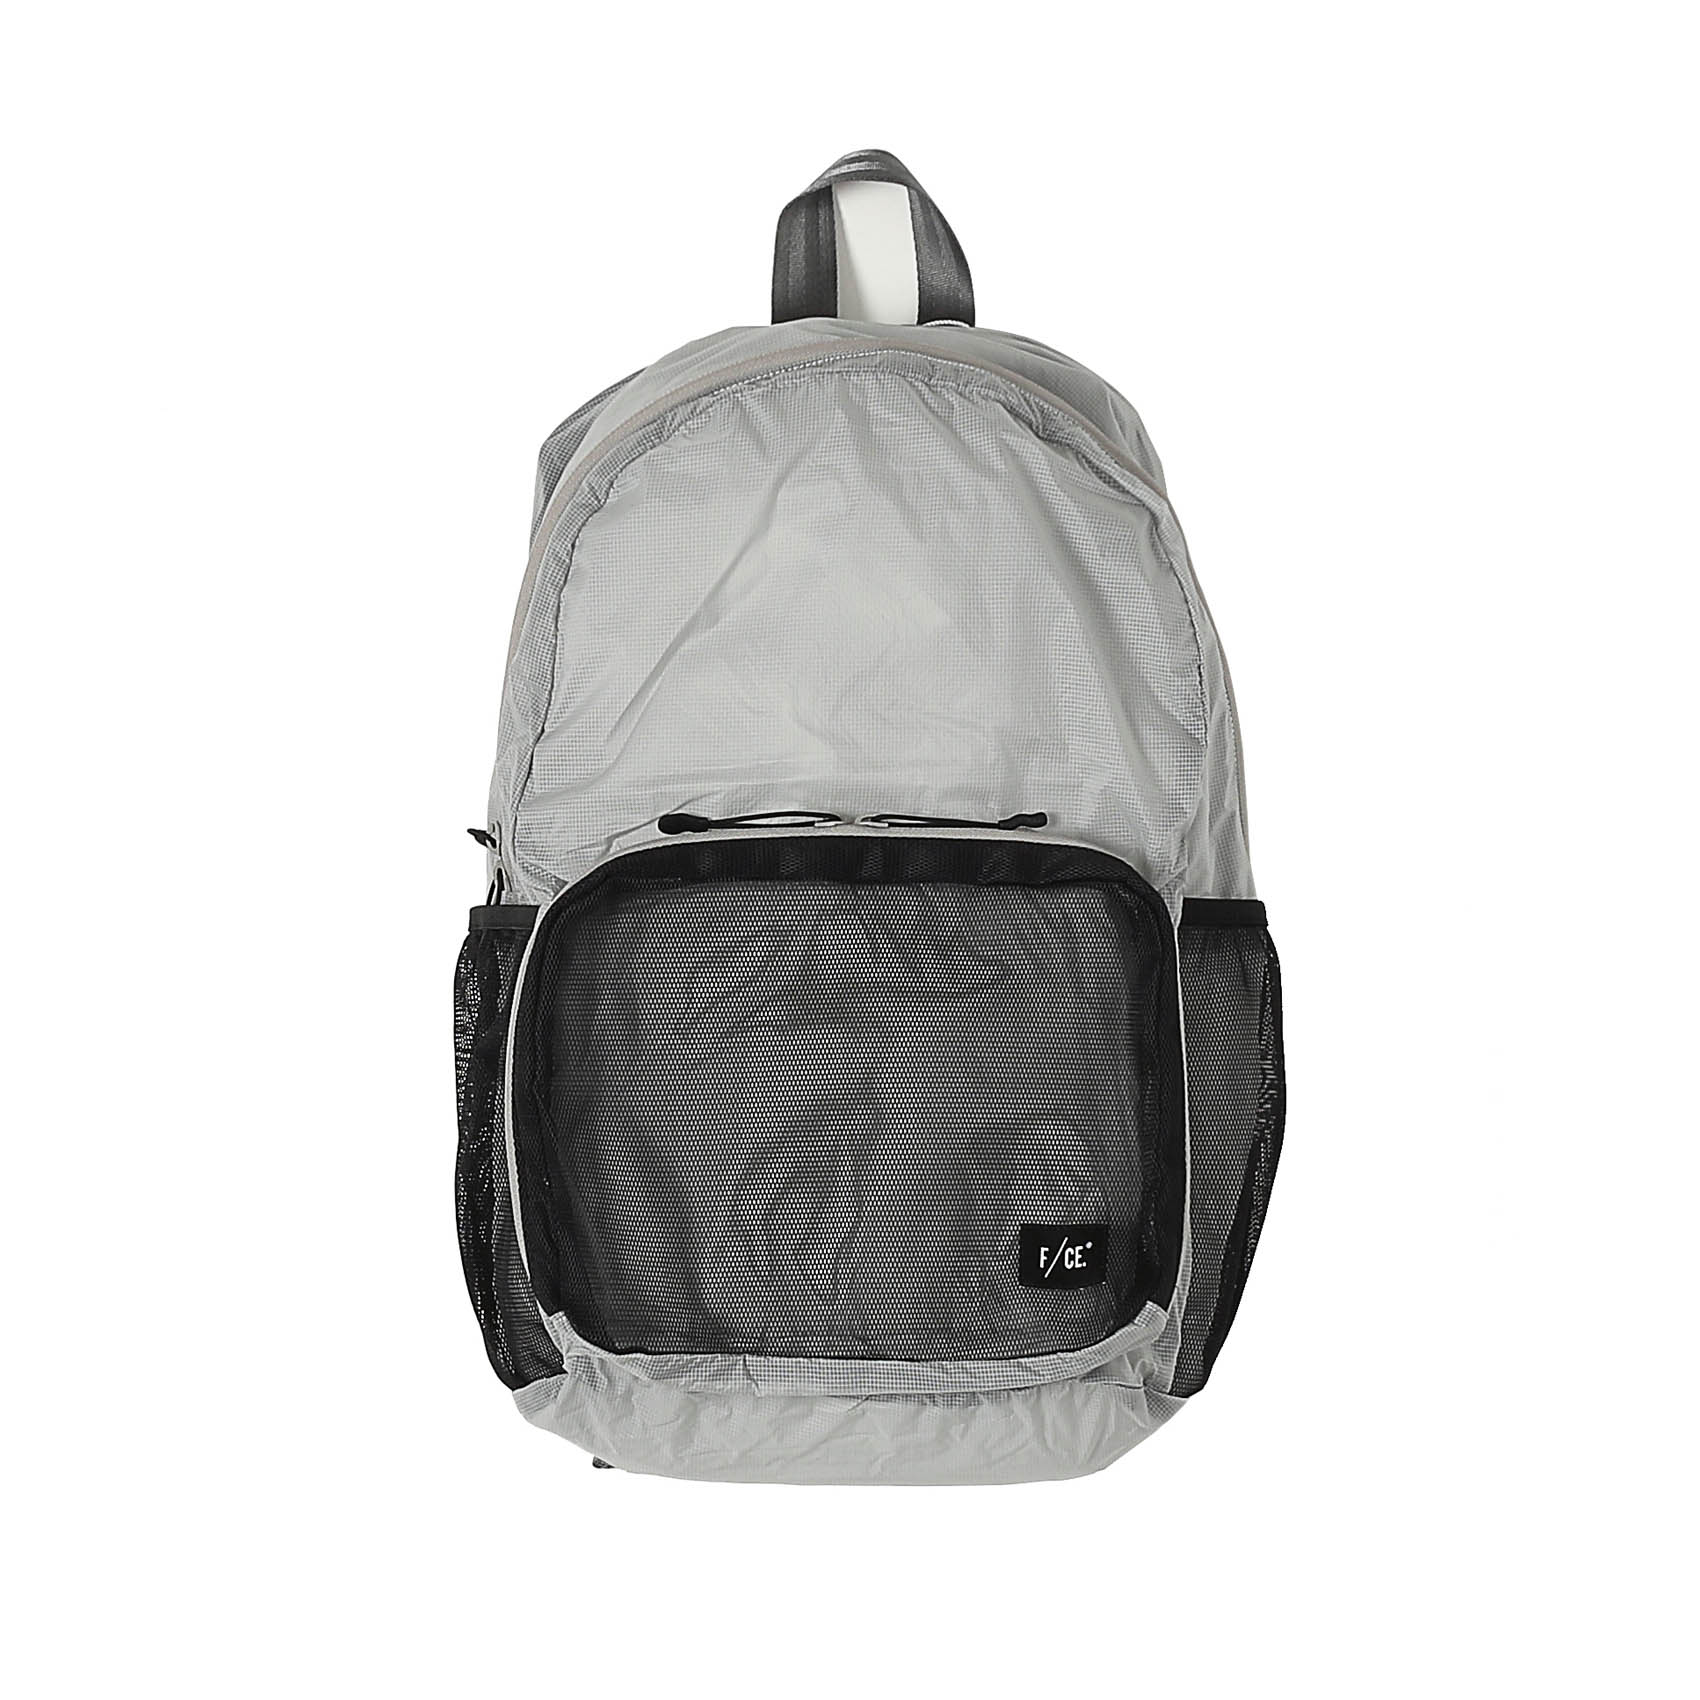 RECYCLED PACKABLE DAYPACK - GRAY